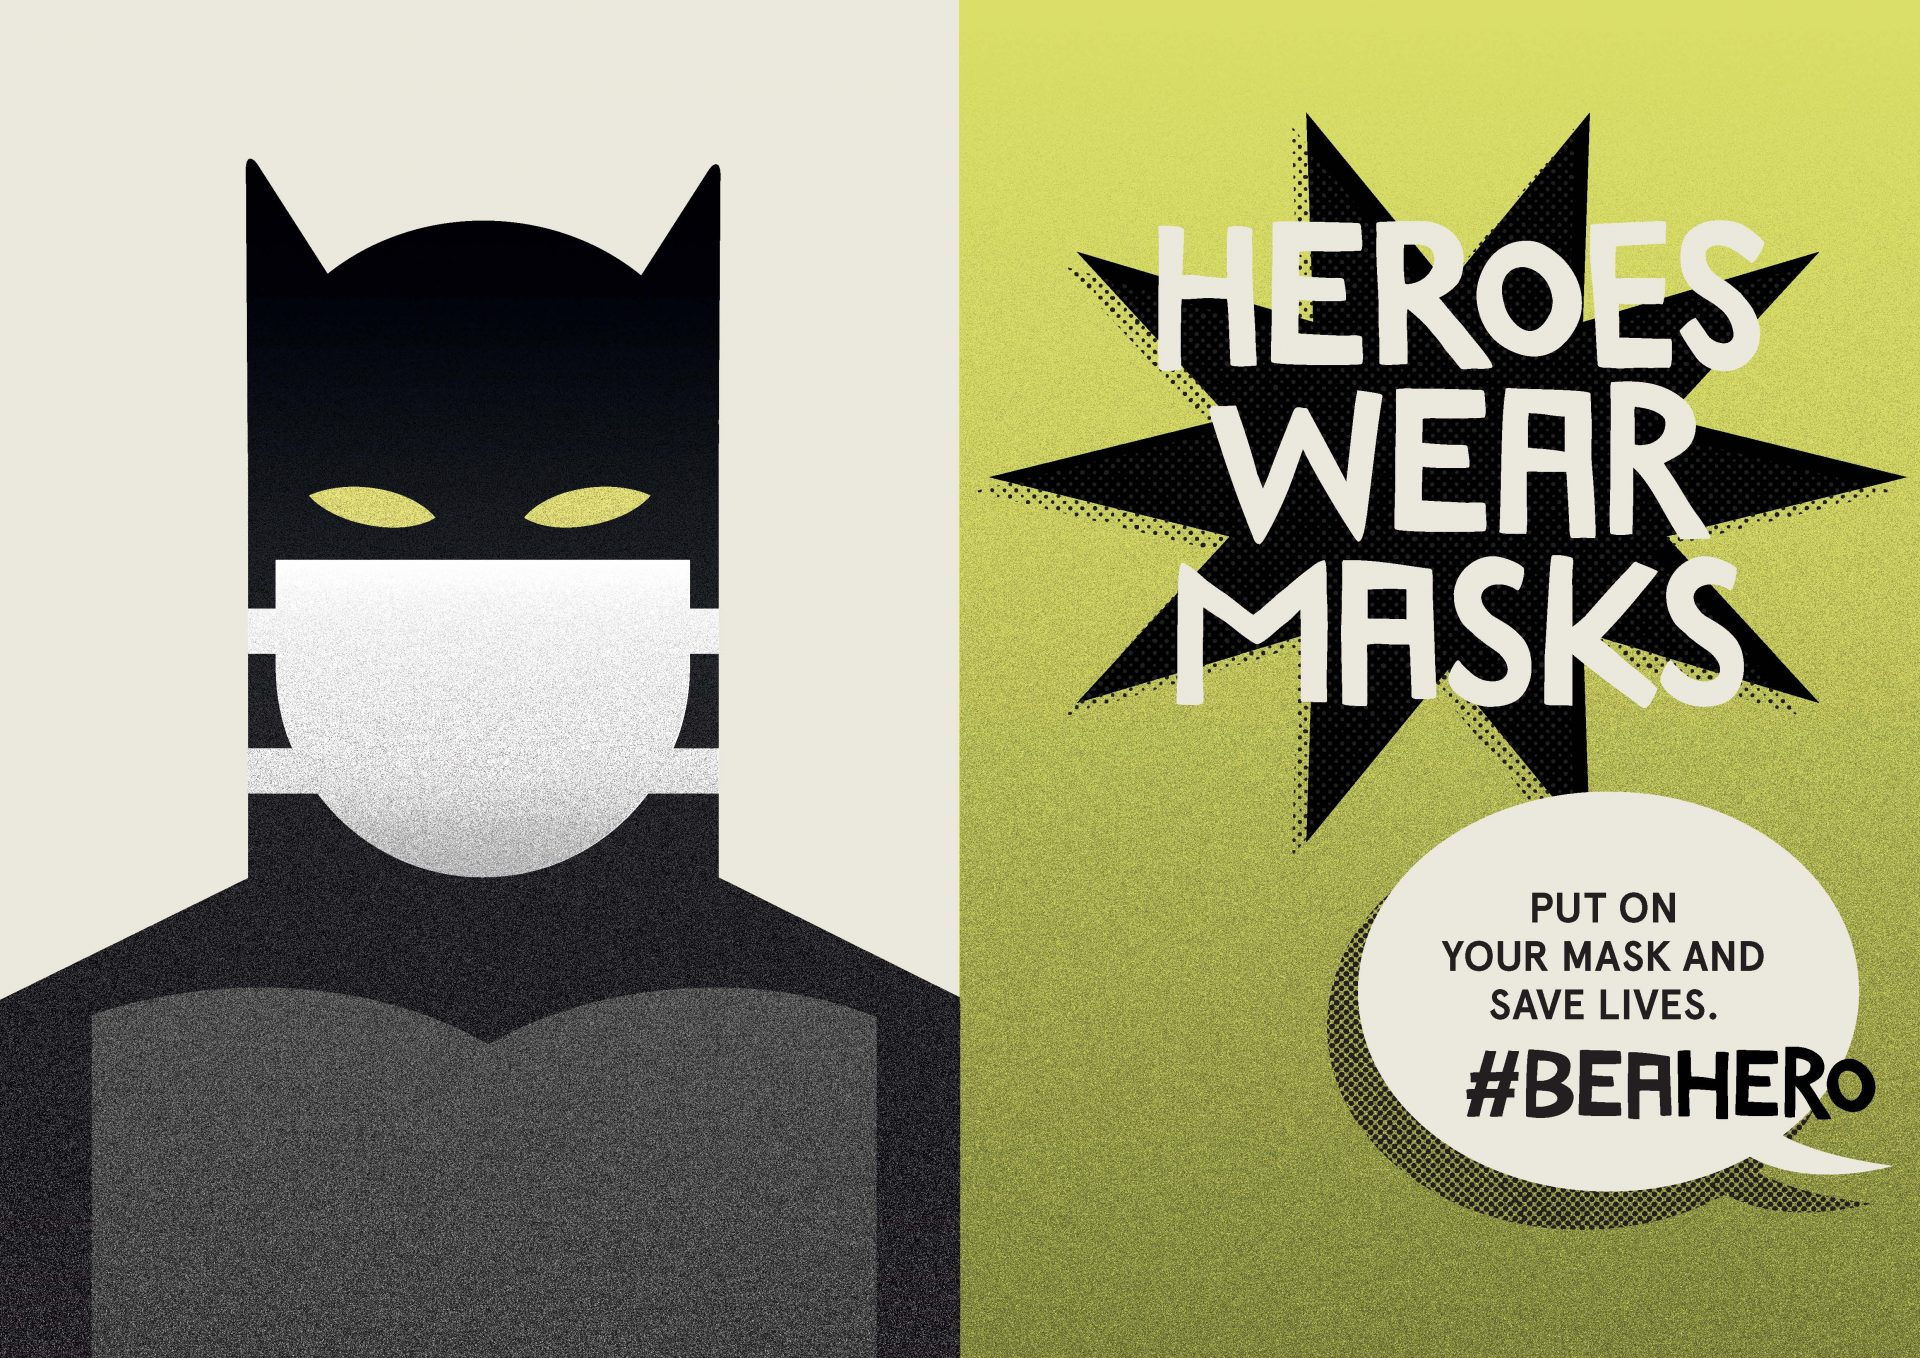 Heroes wear masks. Batman.